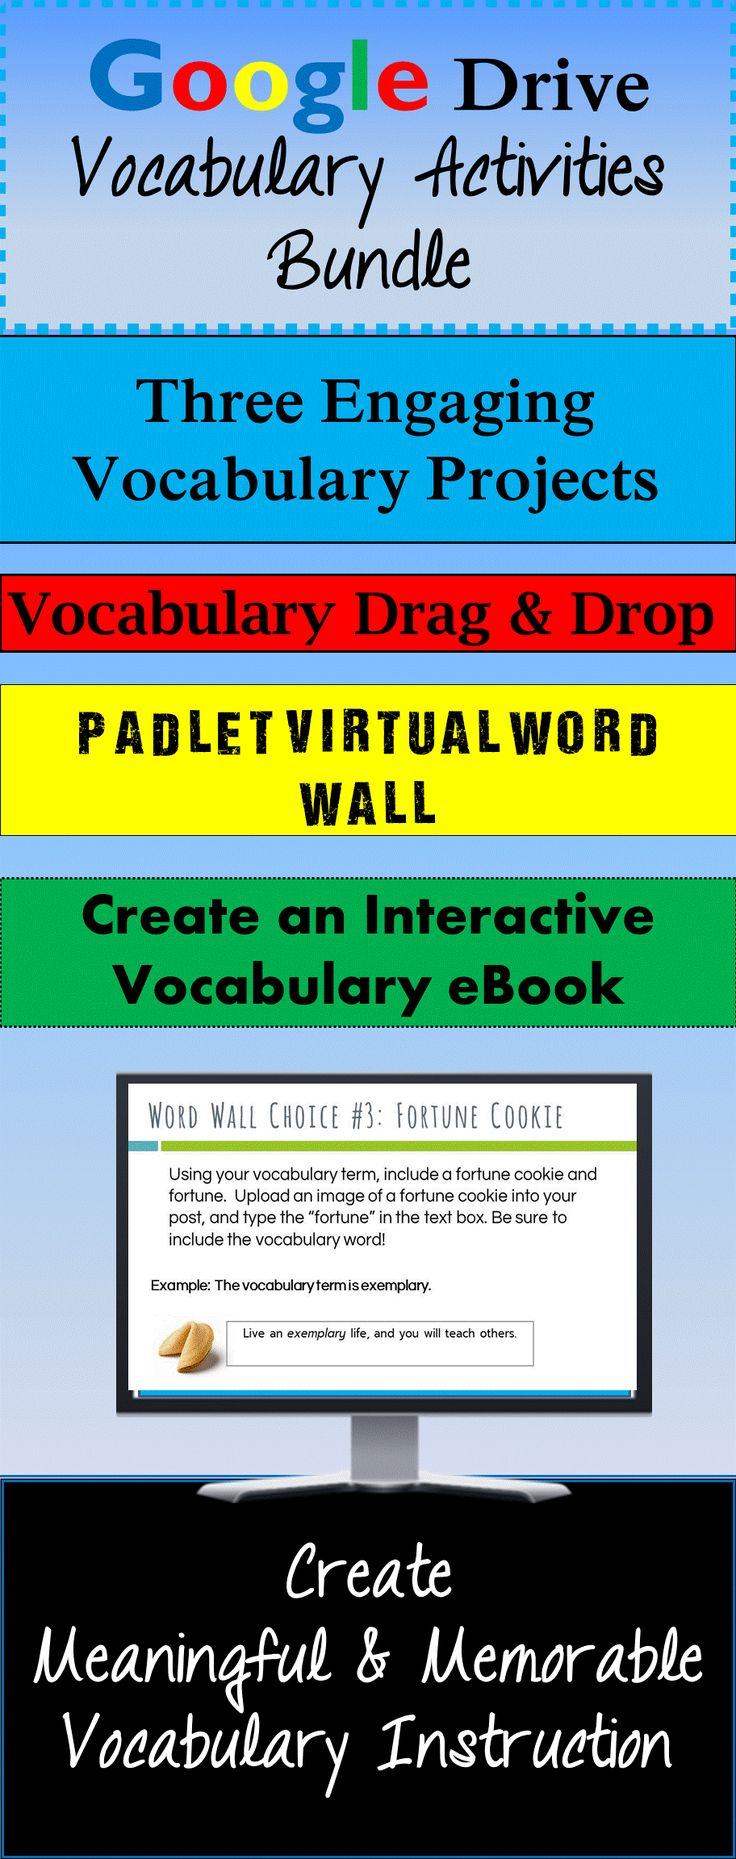 Create and innovate with Google Drive vocabulary activities!  This includes three engaging activities and projects to practice, learn, and create based on Marzano's Six Steps to Effective Vocabulary Instruction.  Make vocabulary words meaningful for your students with these high-interest activities formatted for Google Drive!